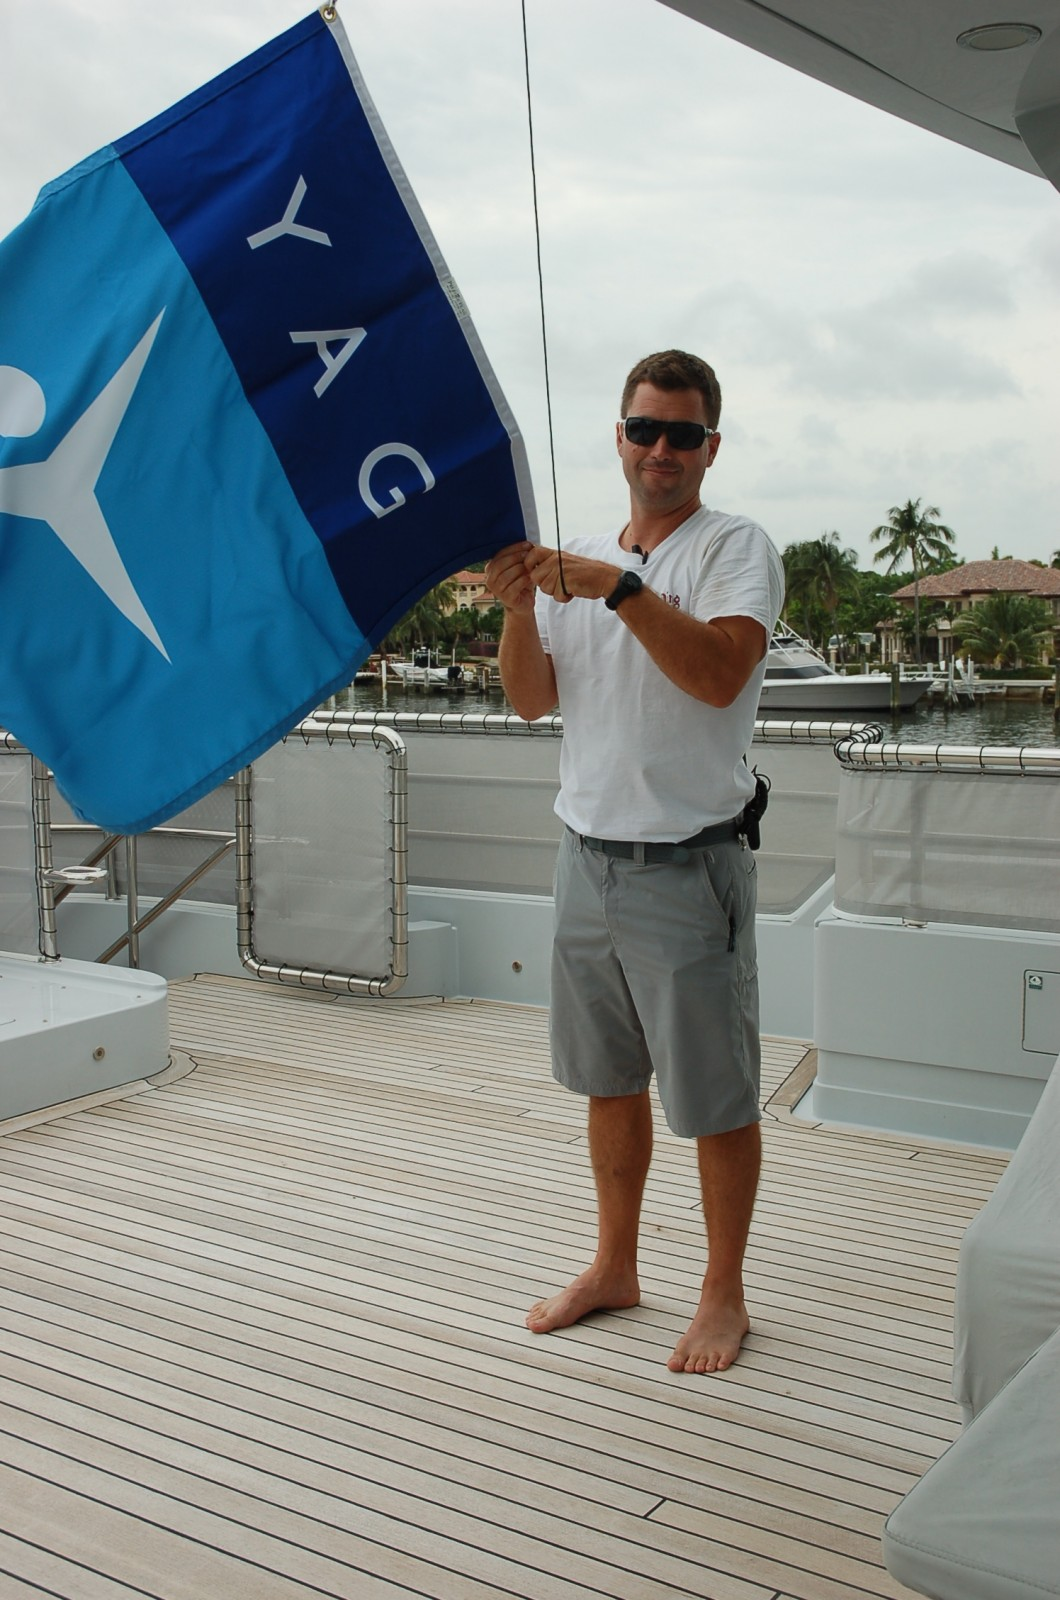 Bosun Mark raises the YachtAid Global flag as the 151-foot M/Y Qing prepares for departure from Bahia Mar in Ft. Lauderdale today. Photo by Lucy Reed